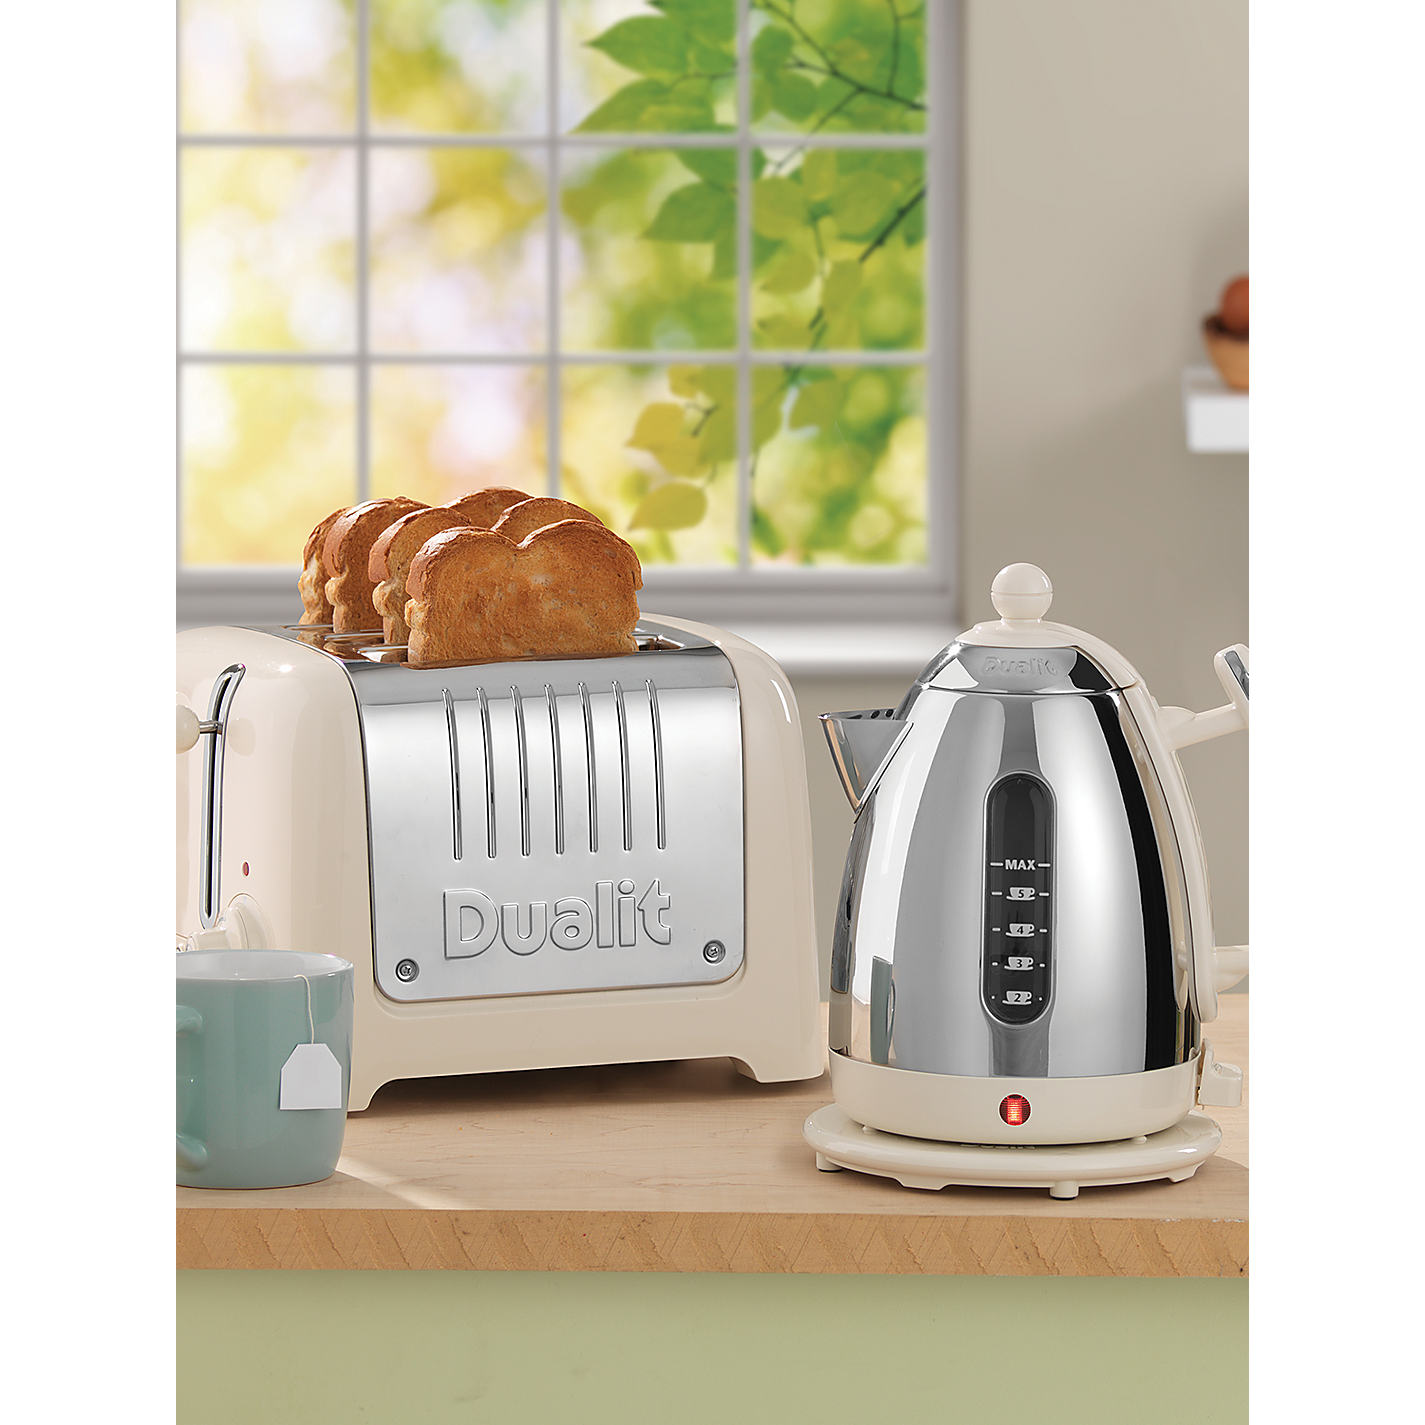 Buy Dualit Lite 4 Slice Toaster with Warming Rack